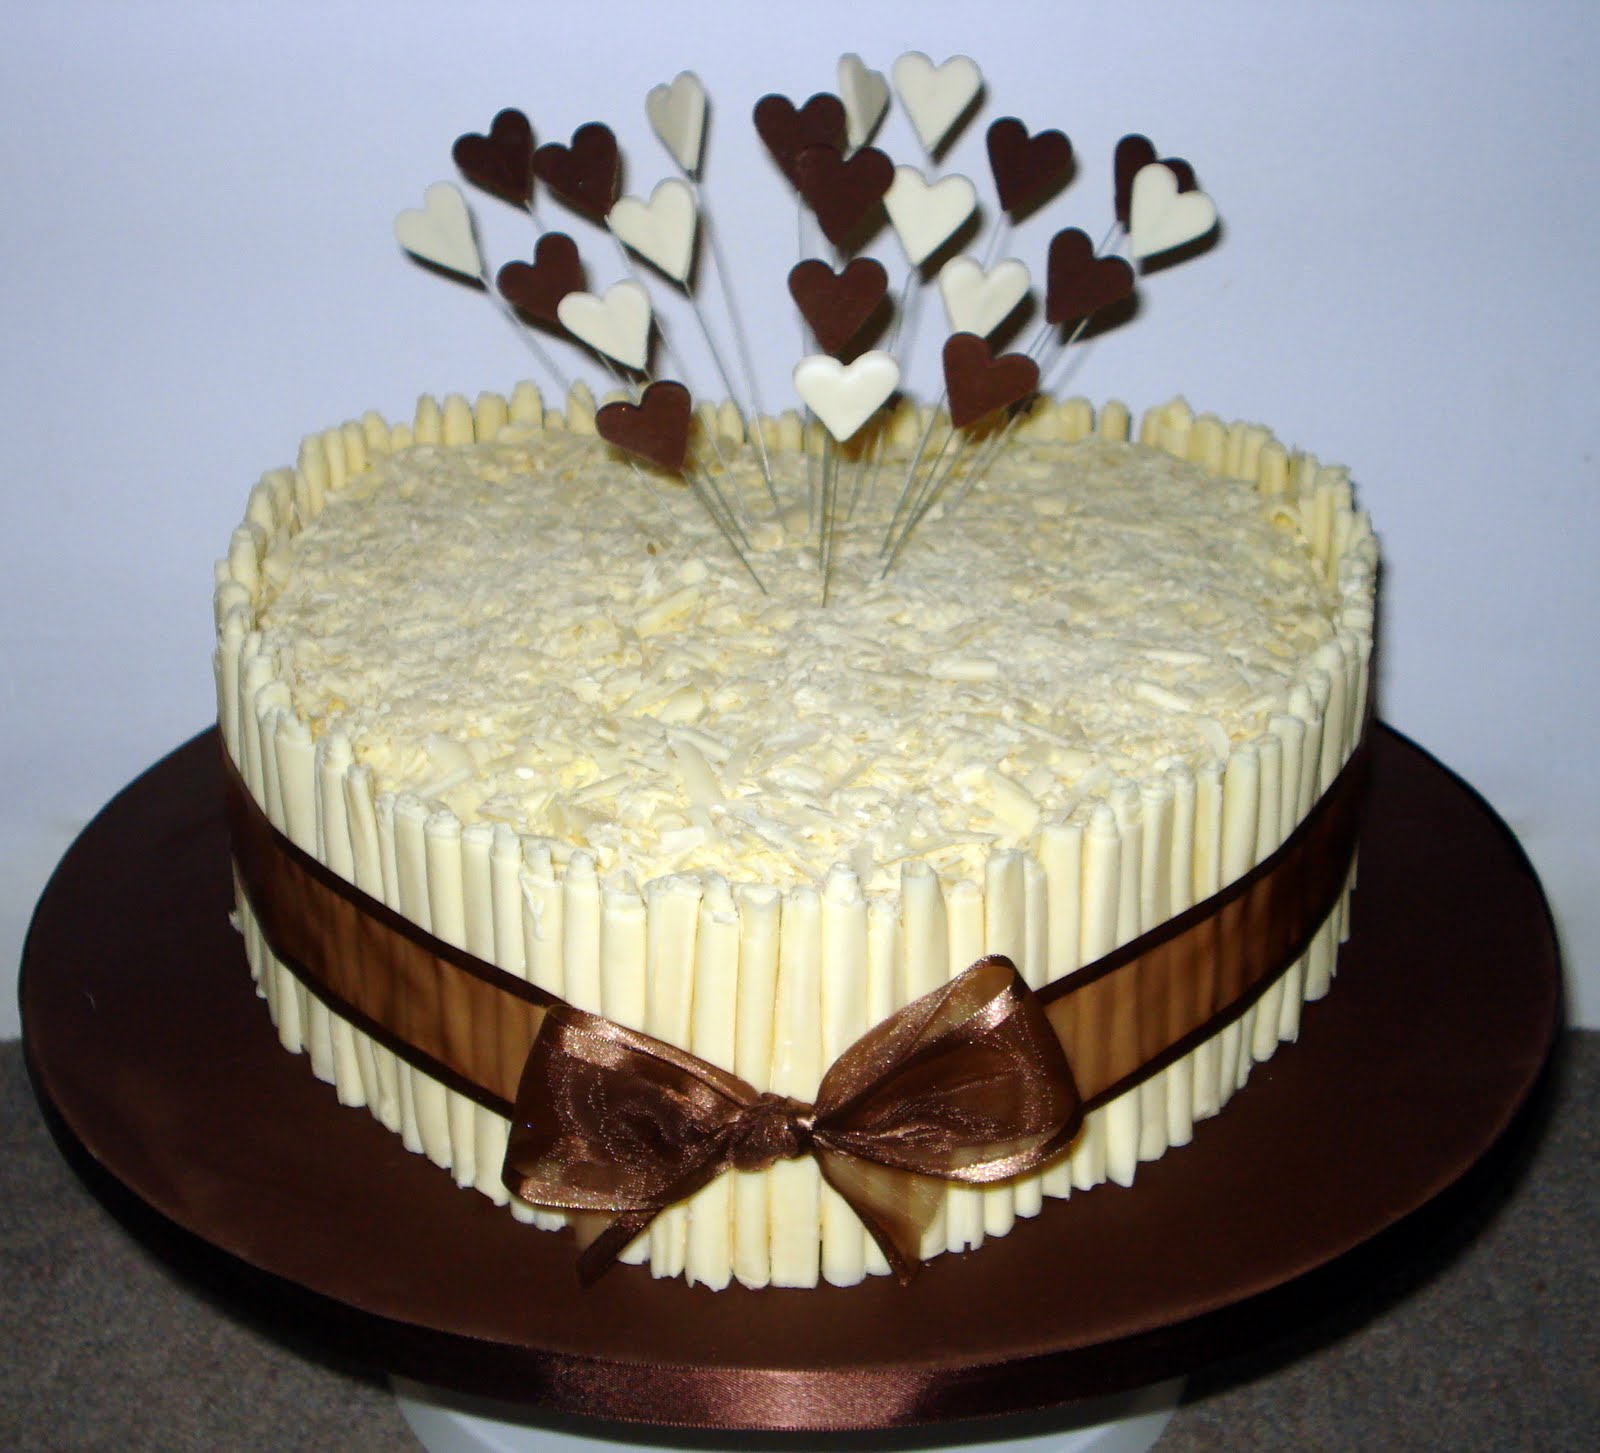 Custom Cake Design: Chocolate heart cake